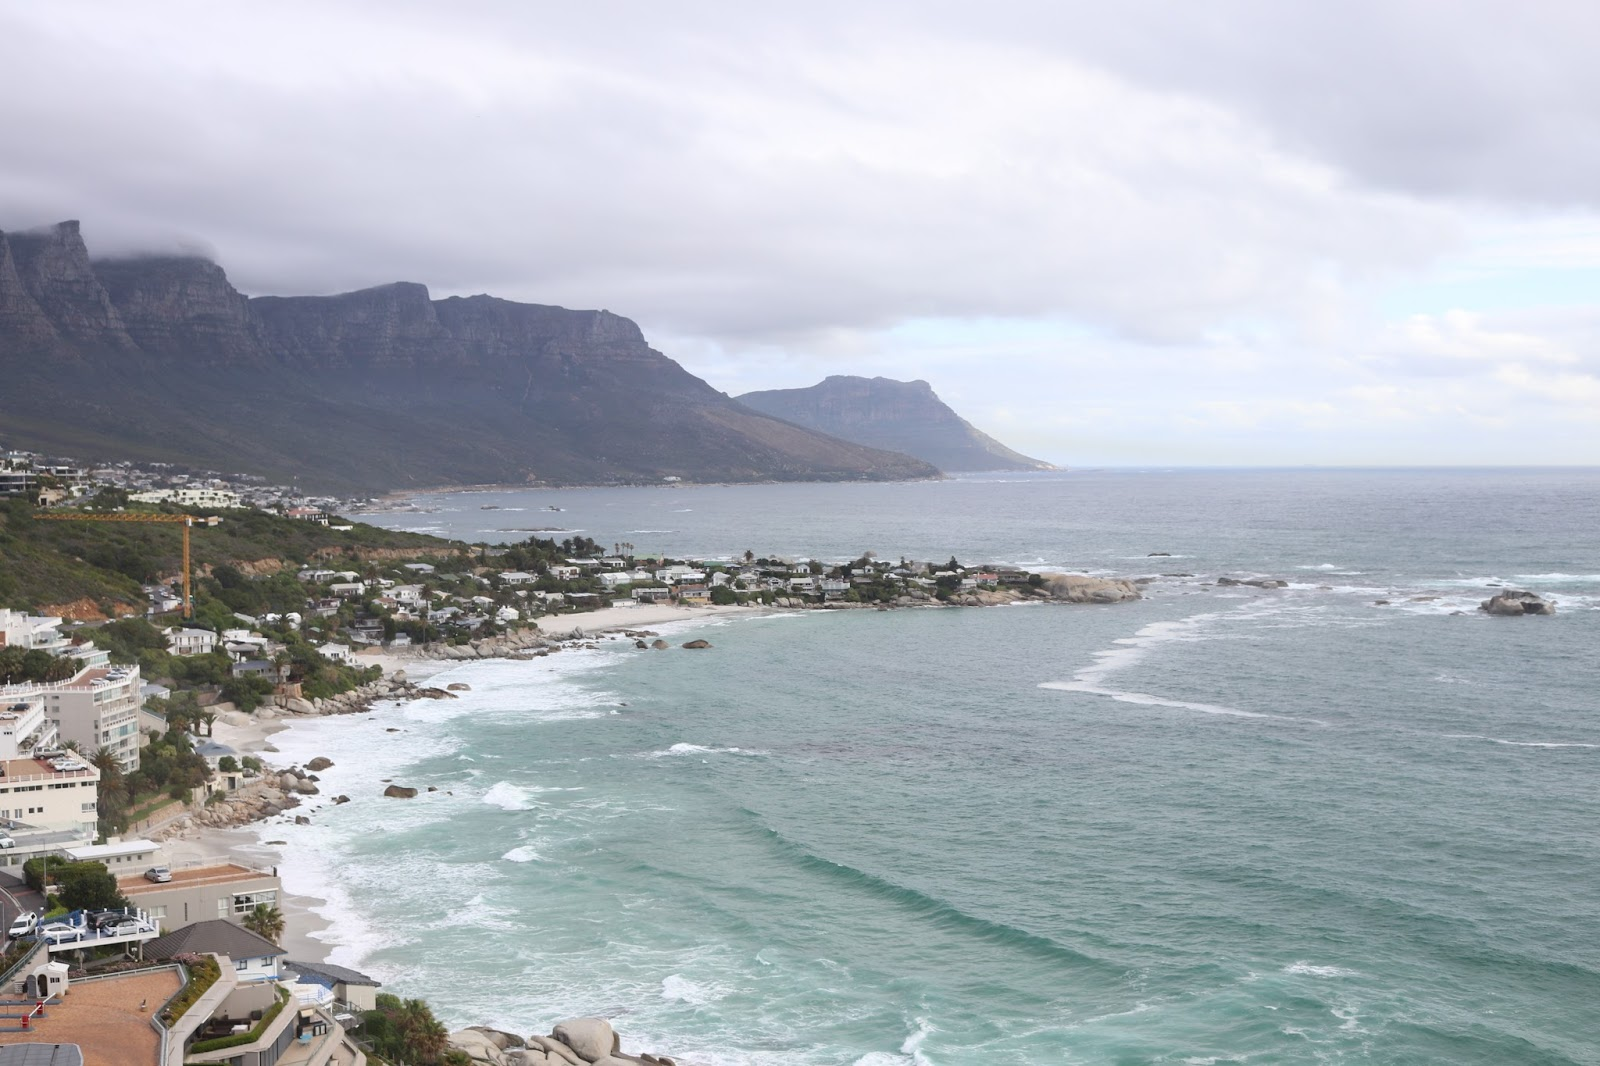 Cape View Clifton, Cape Town, South Africa